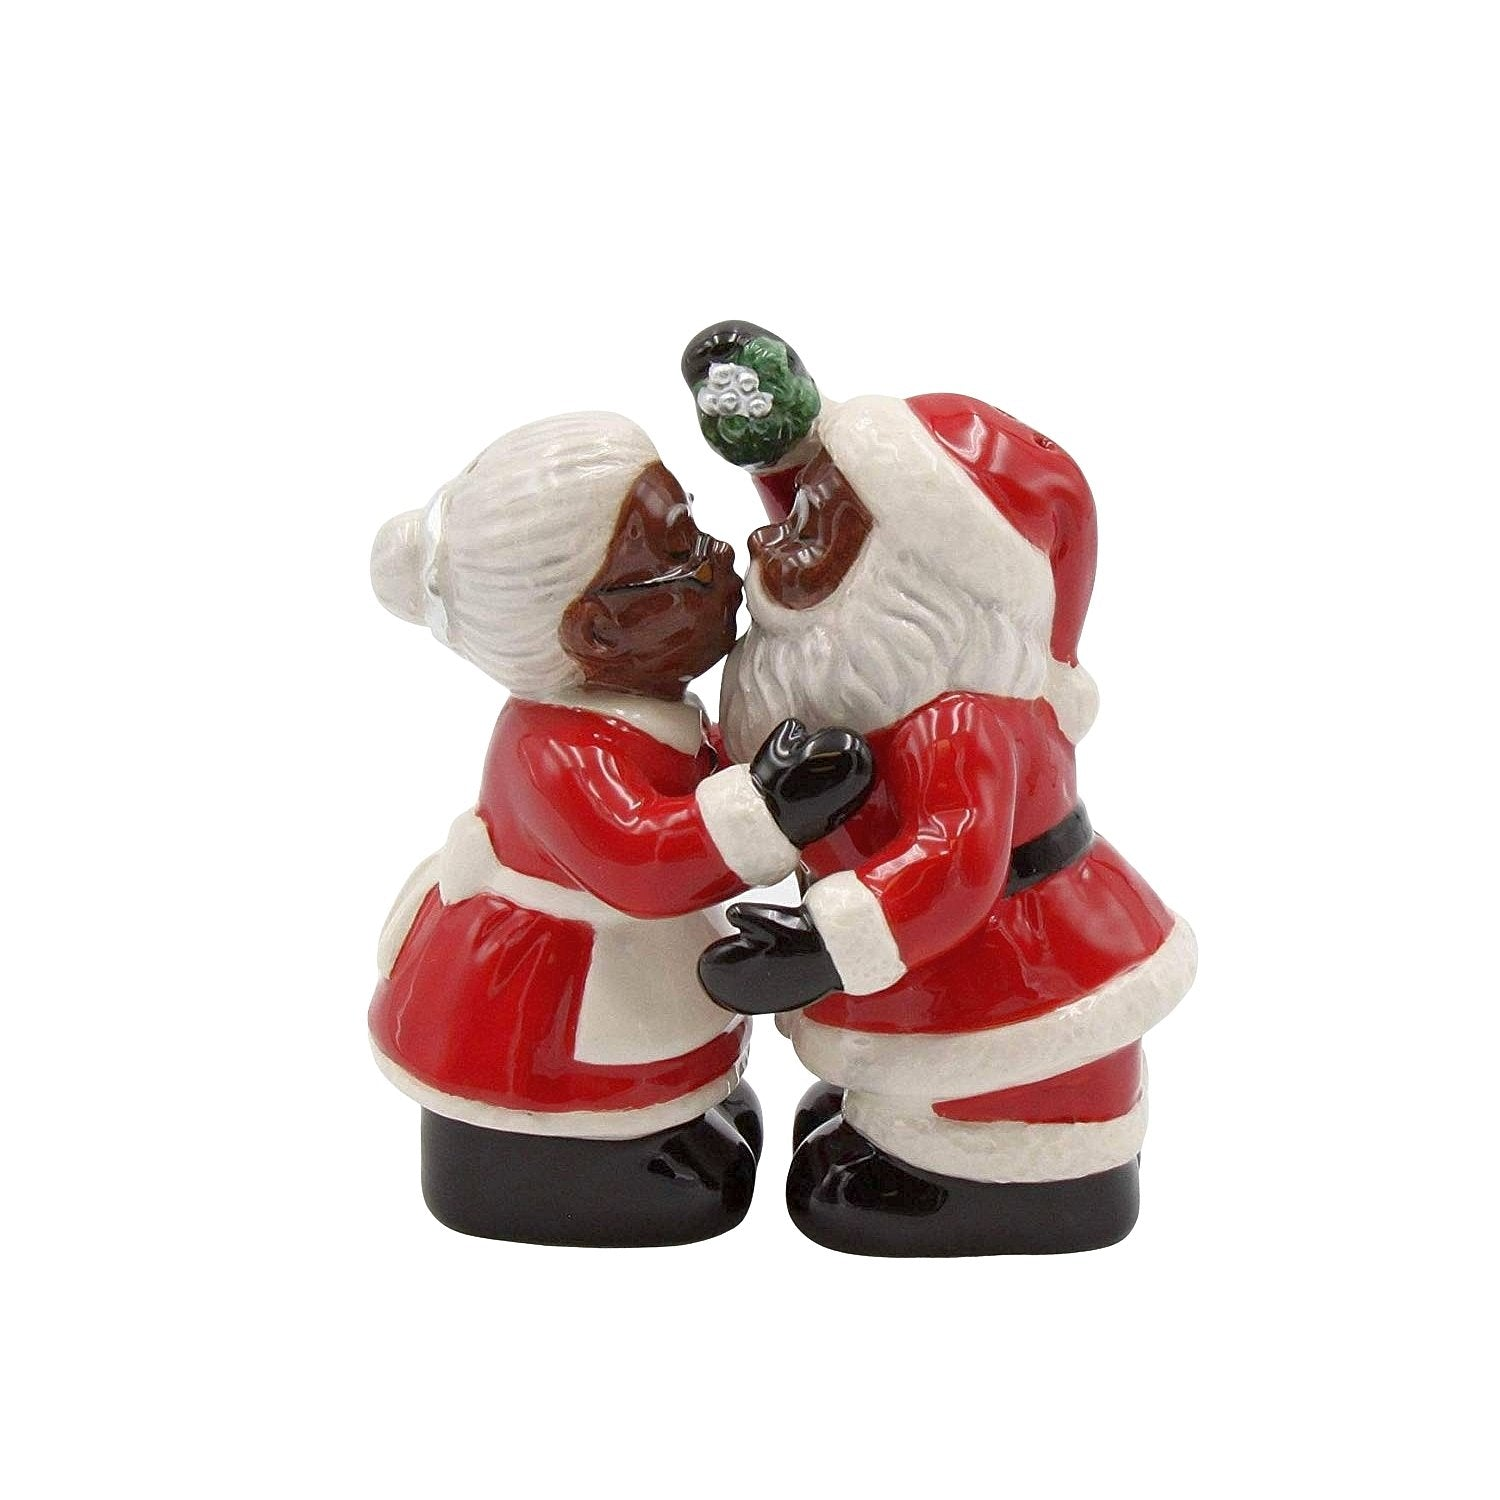 Under the Mistletoe: African American Mr. and Mrs. Santa Claus Salt and Pepper Shaker Set